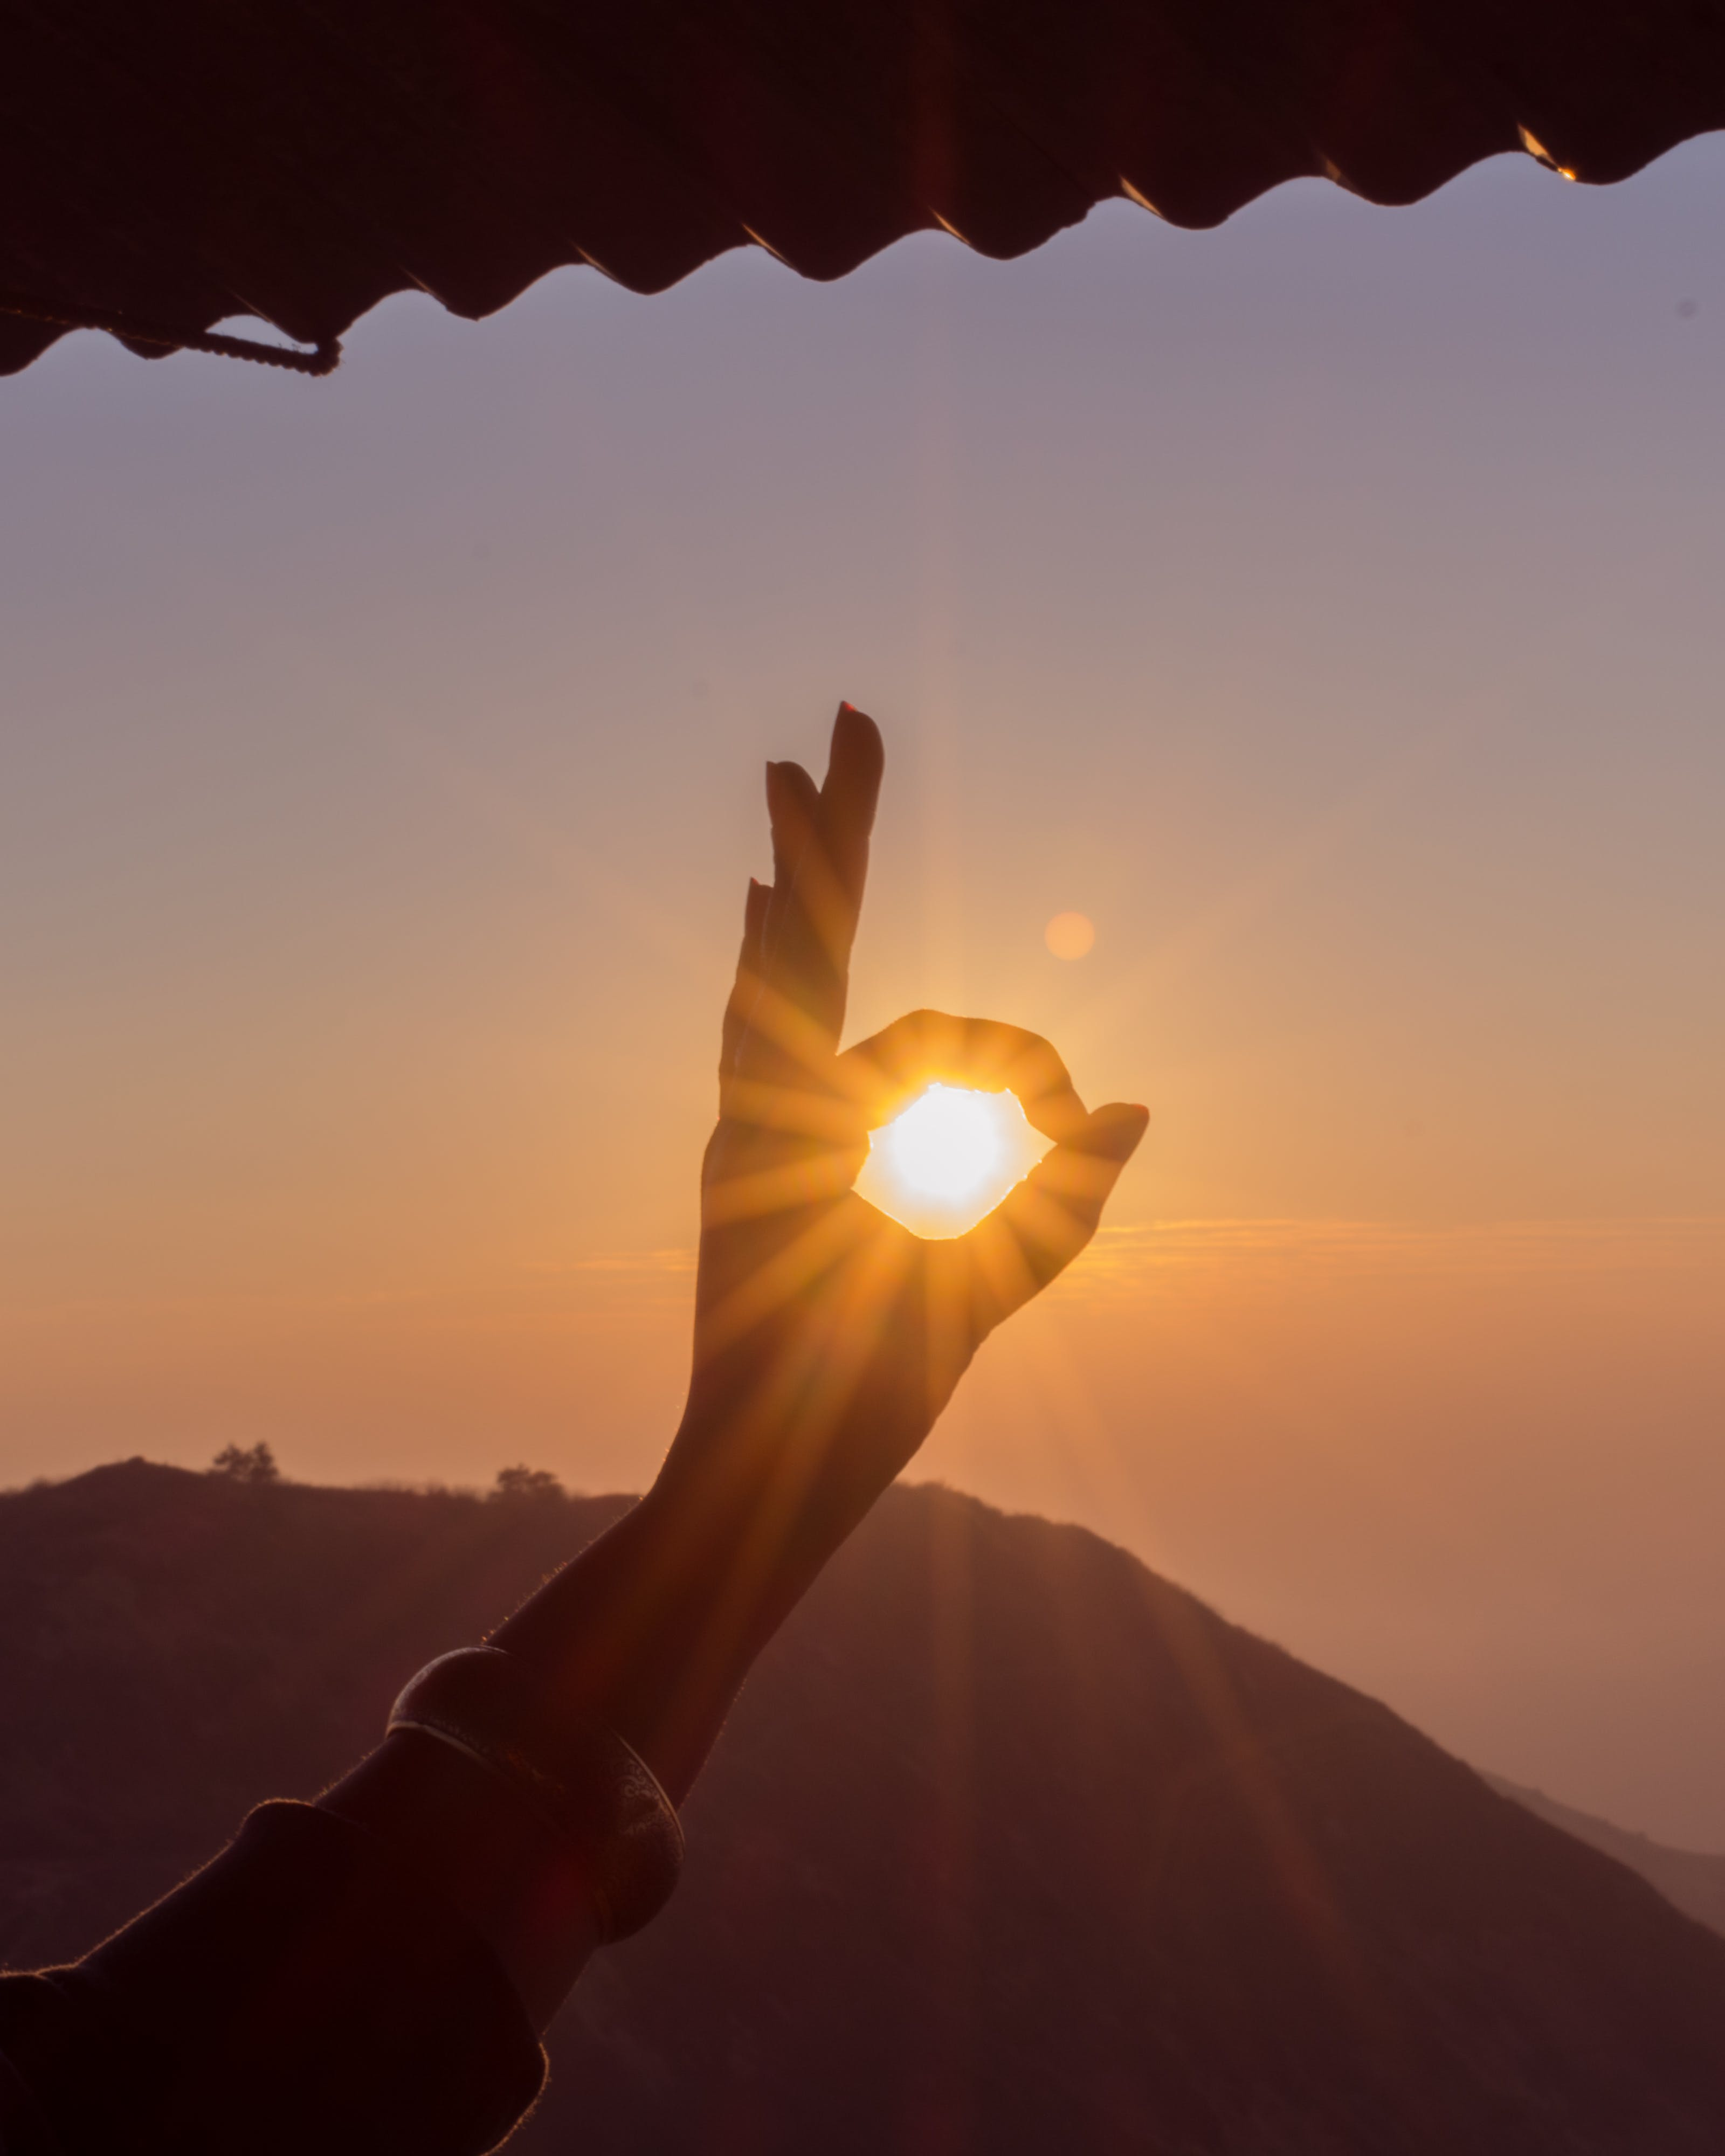 Photography of Hand During Sunset